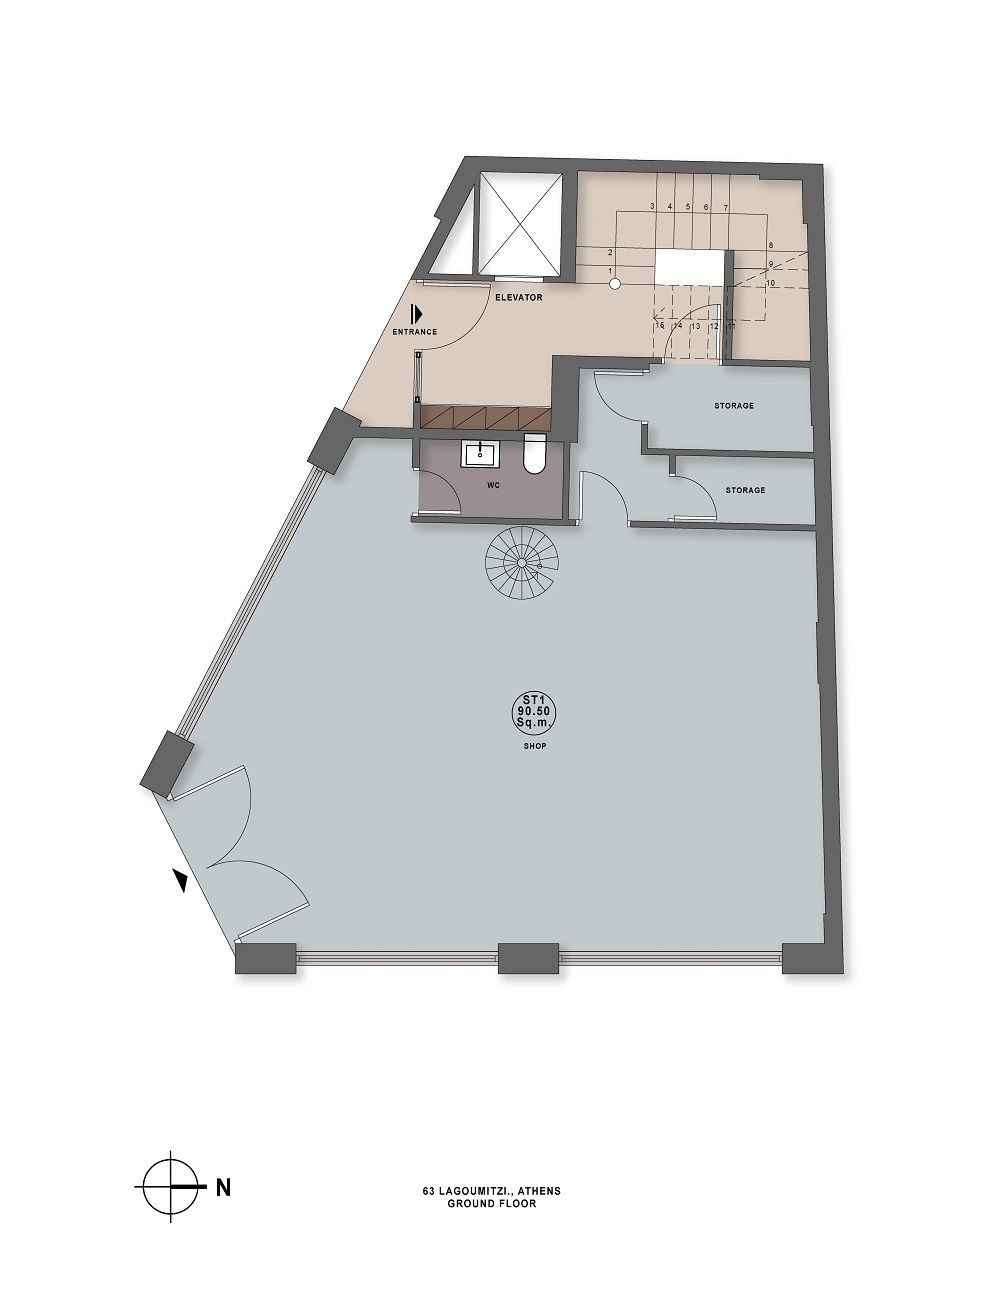 Lagoumitzi 63 ground floor plan